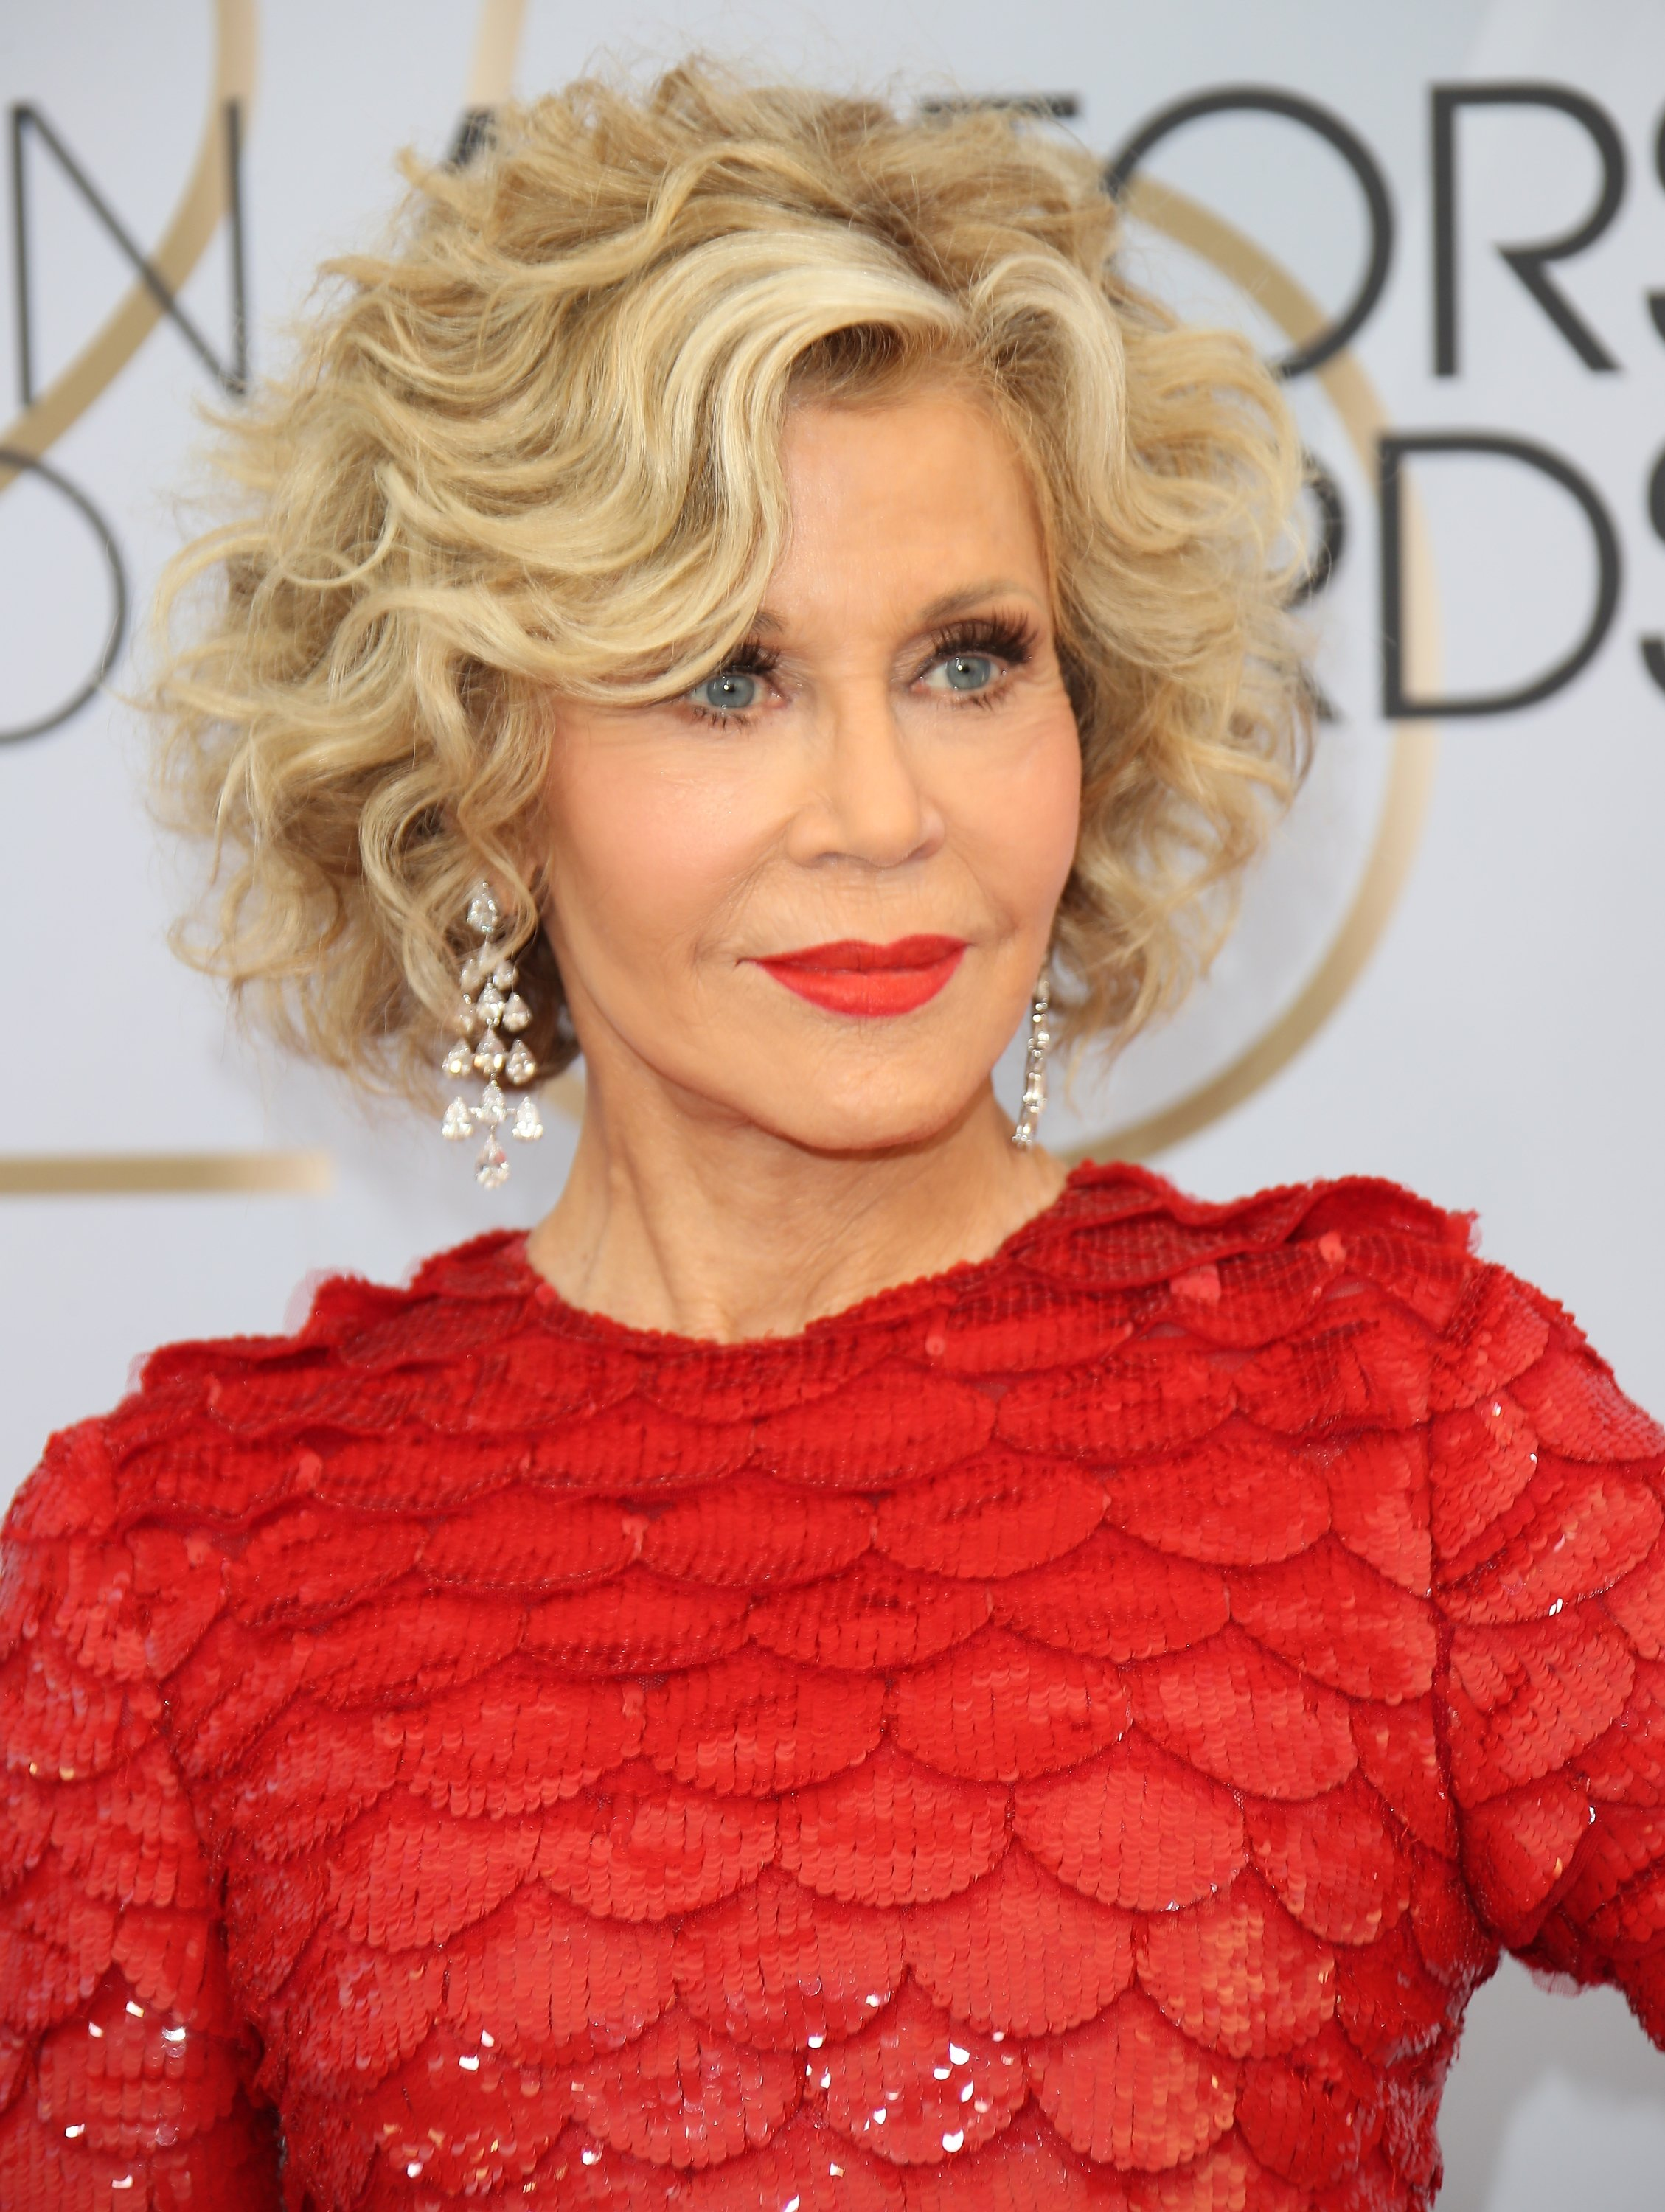 Jane Fonda attends the 25th Annual Screen Actors Guild Awards at The Shrine Auditorium on January 27, 2019 in Los Angeles, California   Photo: Getty Images